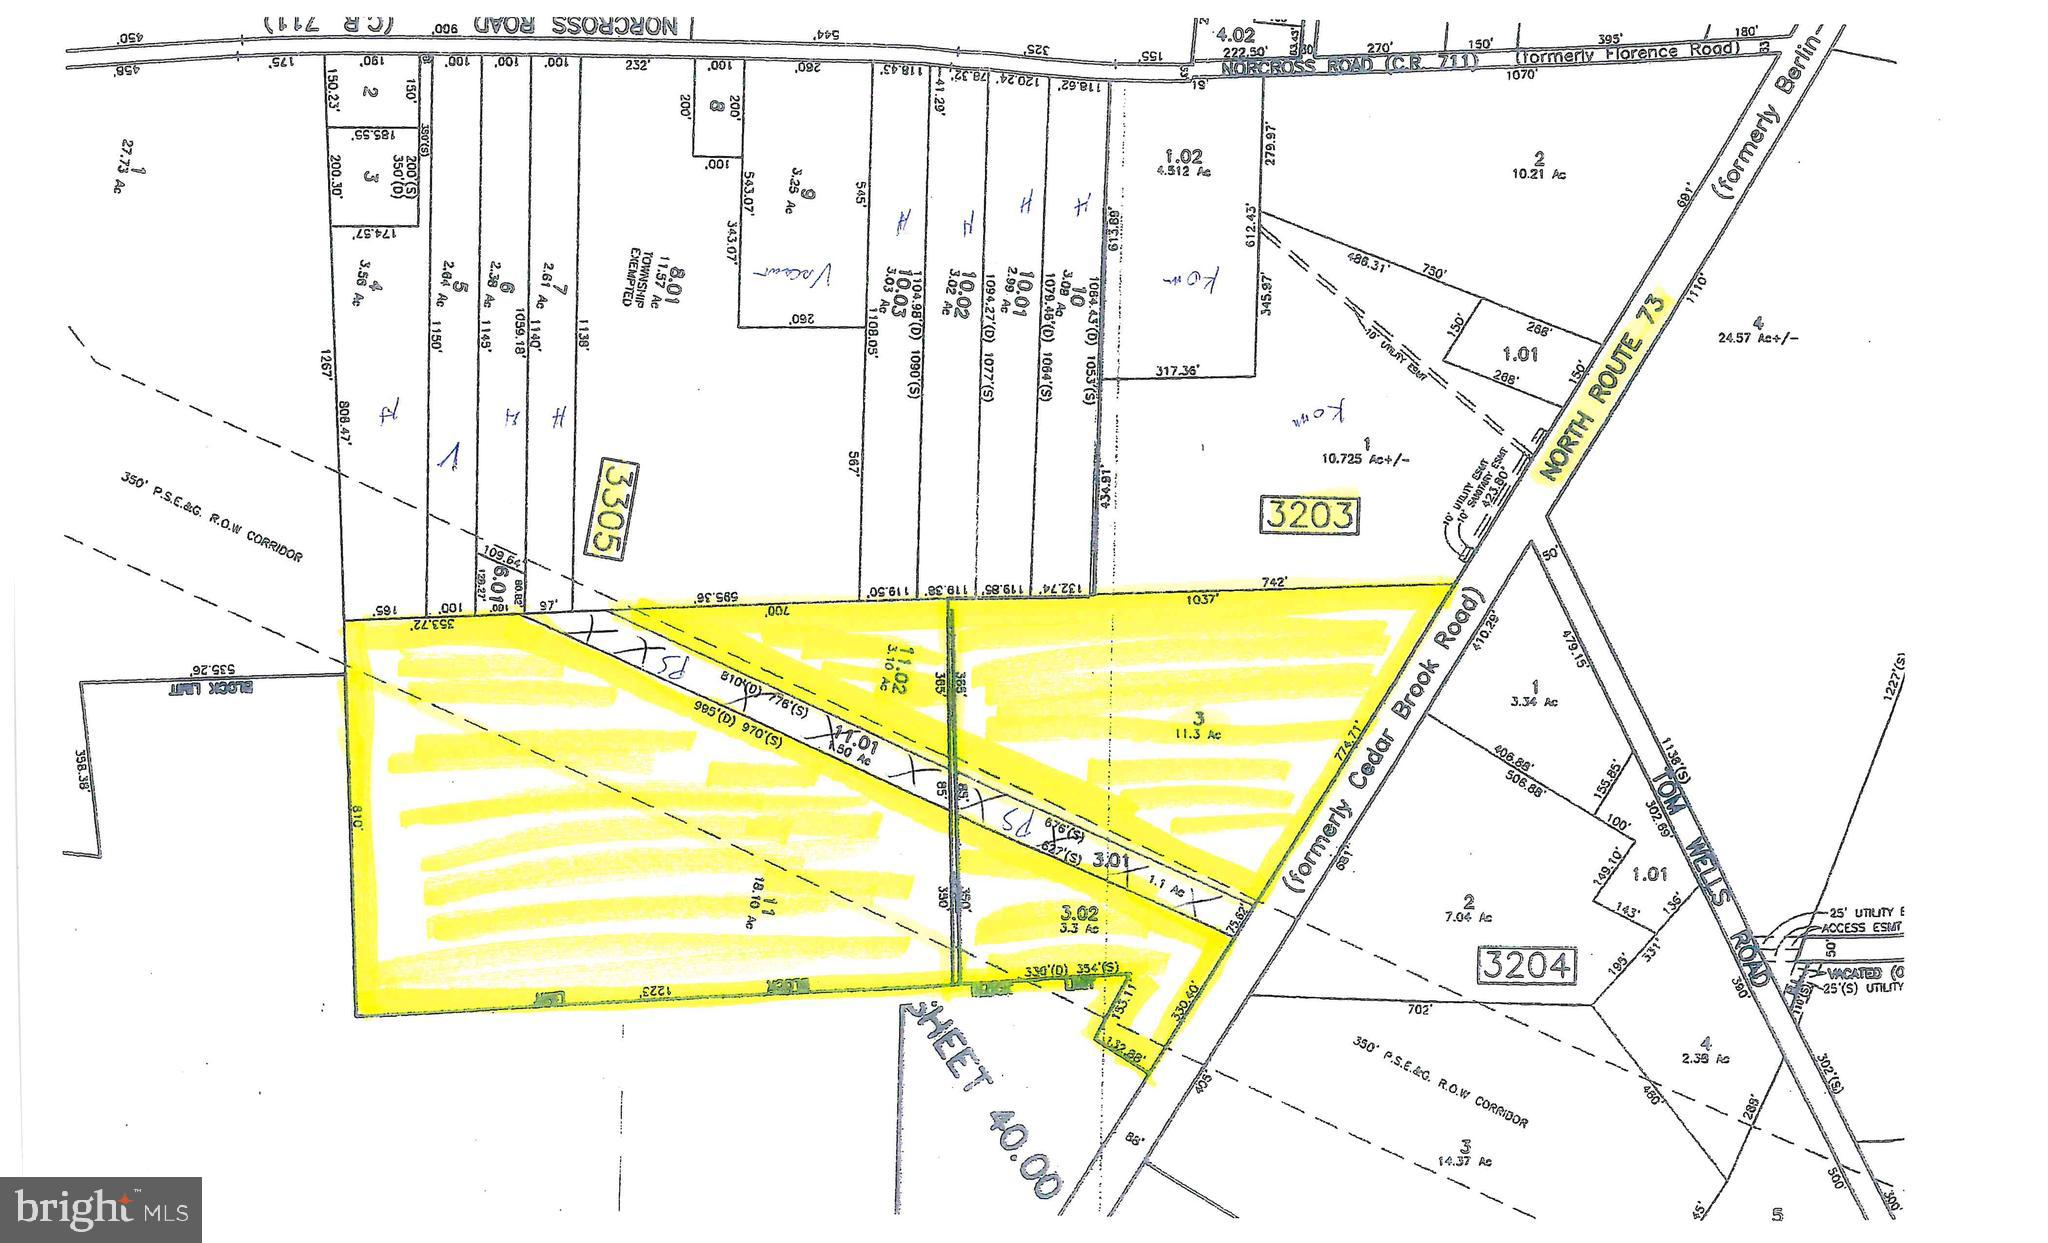 "35 Acres of prime Land on Route 73-Over 1,000 ft Frontage on Route 73, Public Sewer and Water. Zoned Industrial/Commercial. Located next to new Binder Machinery. Great Potential for Industrial Park or Commercial Retail. Price includes a ""Liquor License"". Located just outside of Berlin, the next Area to Boom. Winslow Township has many tax breaks for New Construction, Commercial/Industrial Developments including Tax Abatements. Do part Commercial, part Industrial, all Commercial or all Industrial."